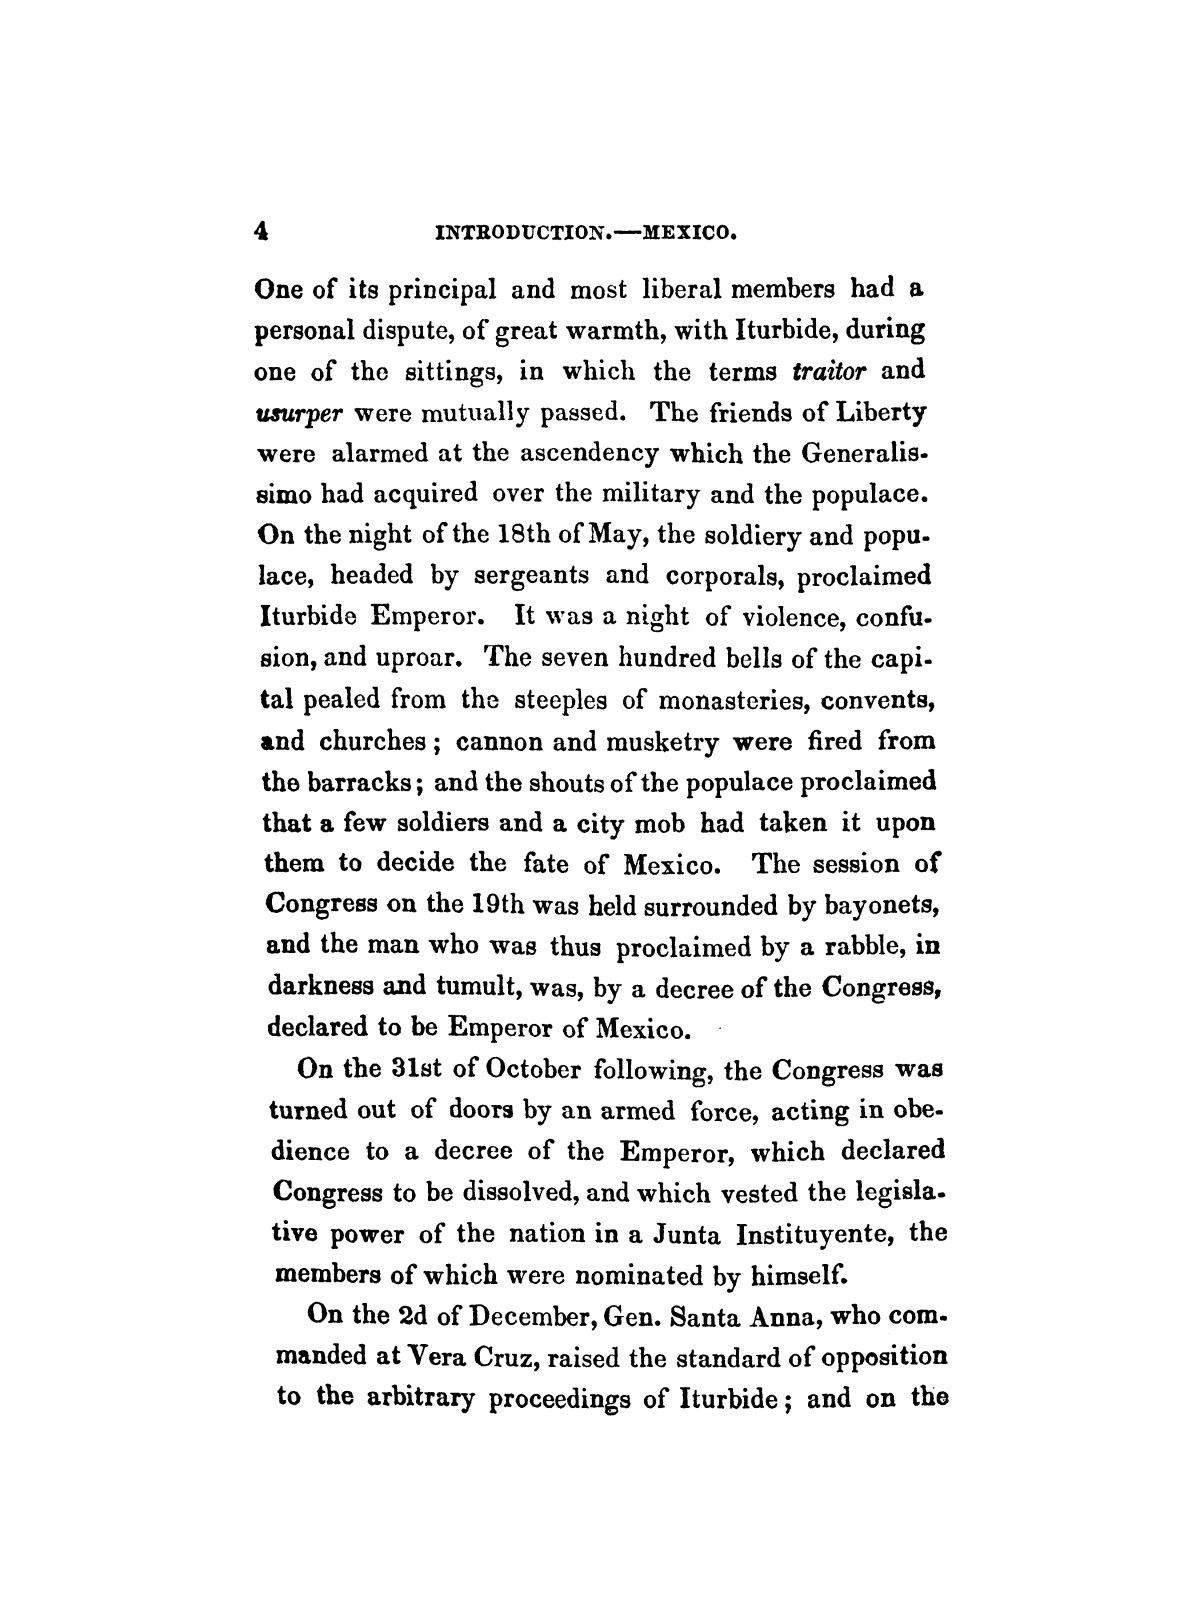 History of the revolution in Texas, particularly of the war of 1835 & '36; together with the latest geographical, topographical, and statistical accounts of the country, from the most authentic sources. Also, an appendix. By the Rev. C. Newell.                                                                                                      [Sequence #]: 16 of 227